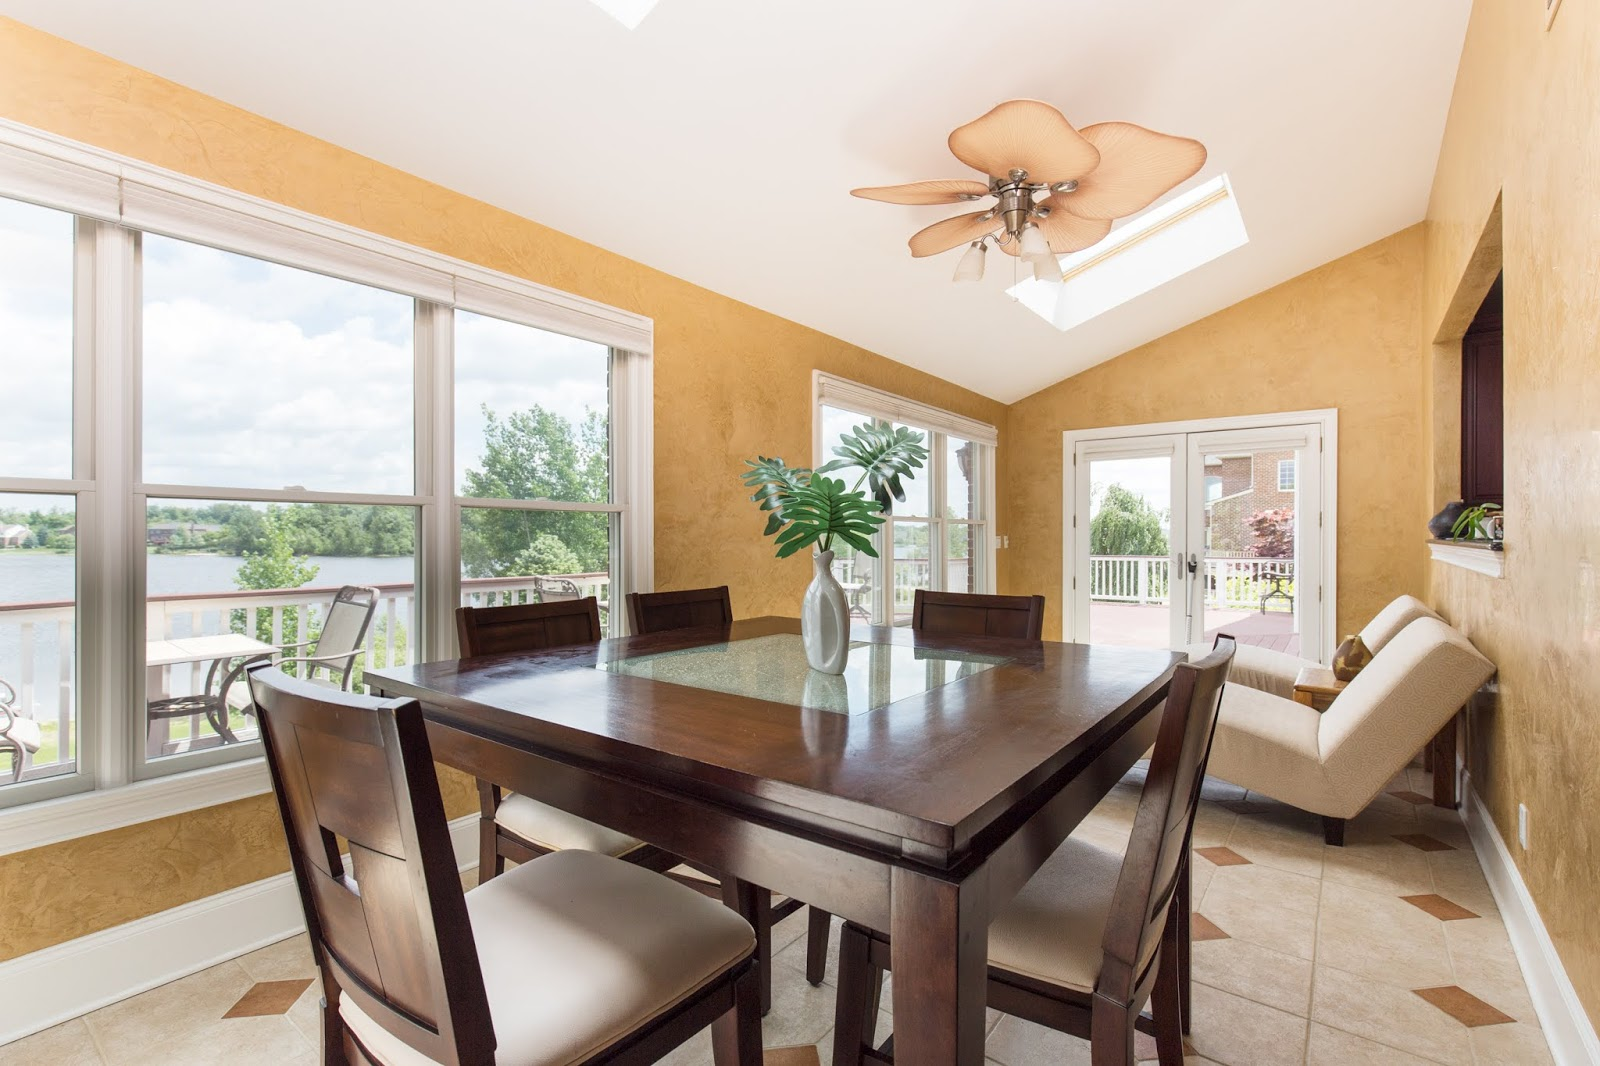 Interior real estate photographer Northville, Canton, Novi, Farmington Hills, Plymouth